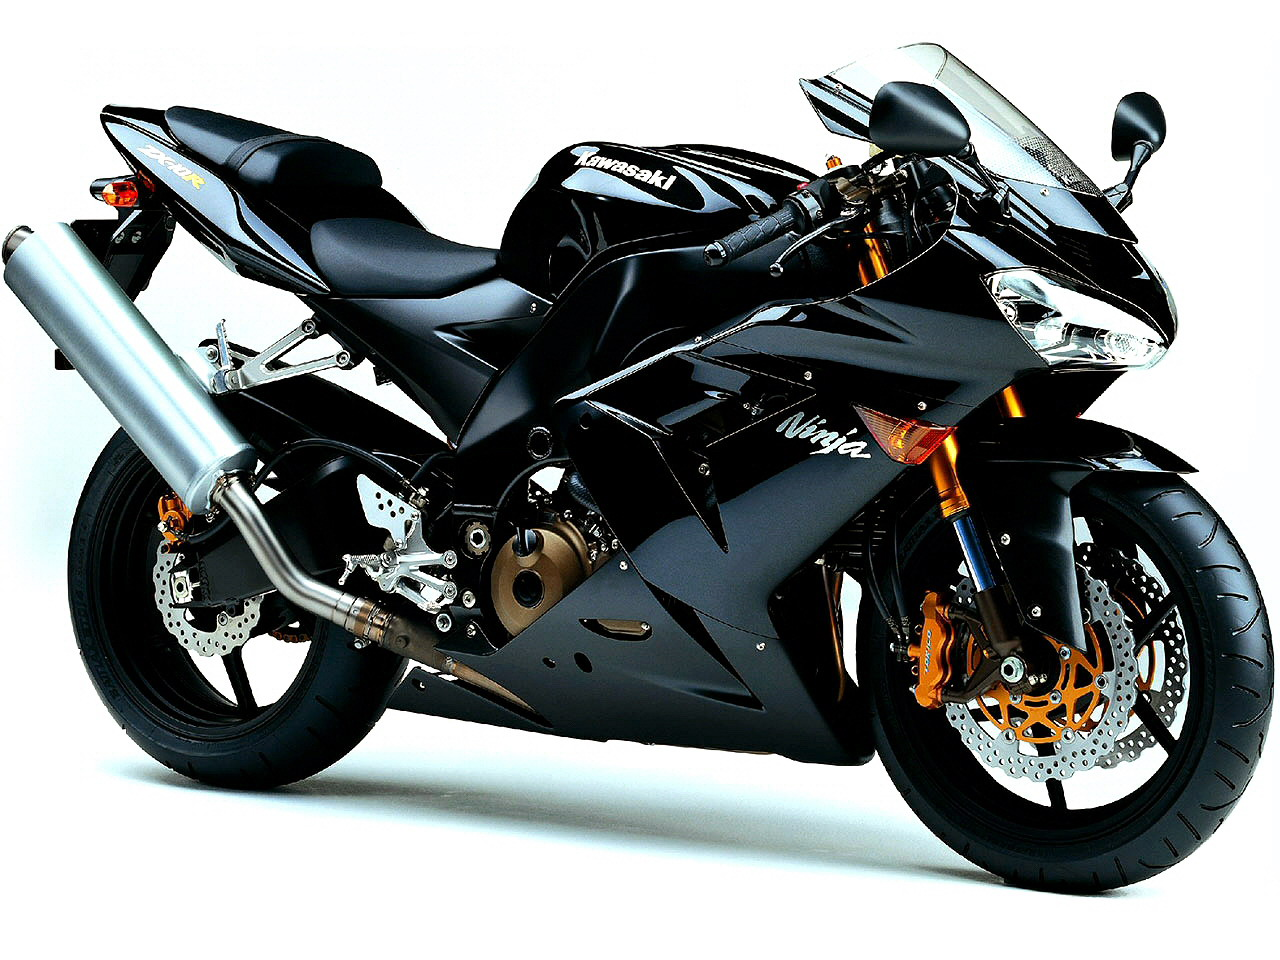 Hd Wallpapers Of Bikes For: Popular Wallpapers HD: Popular Bikes Wallpapers HD